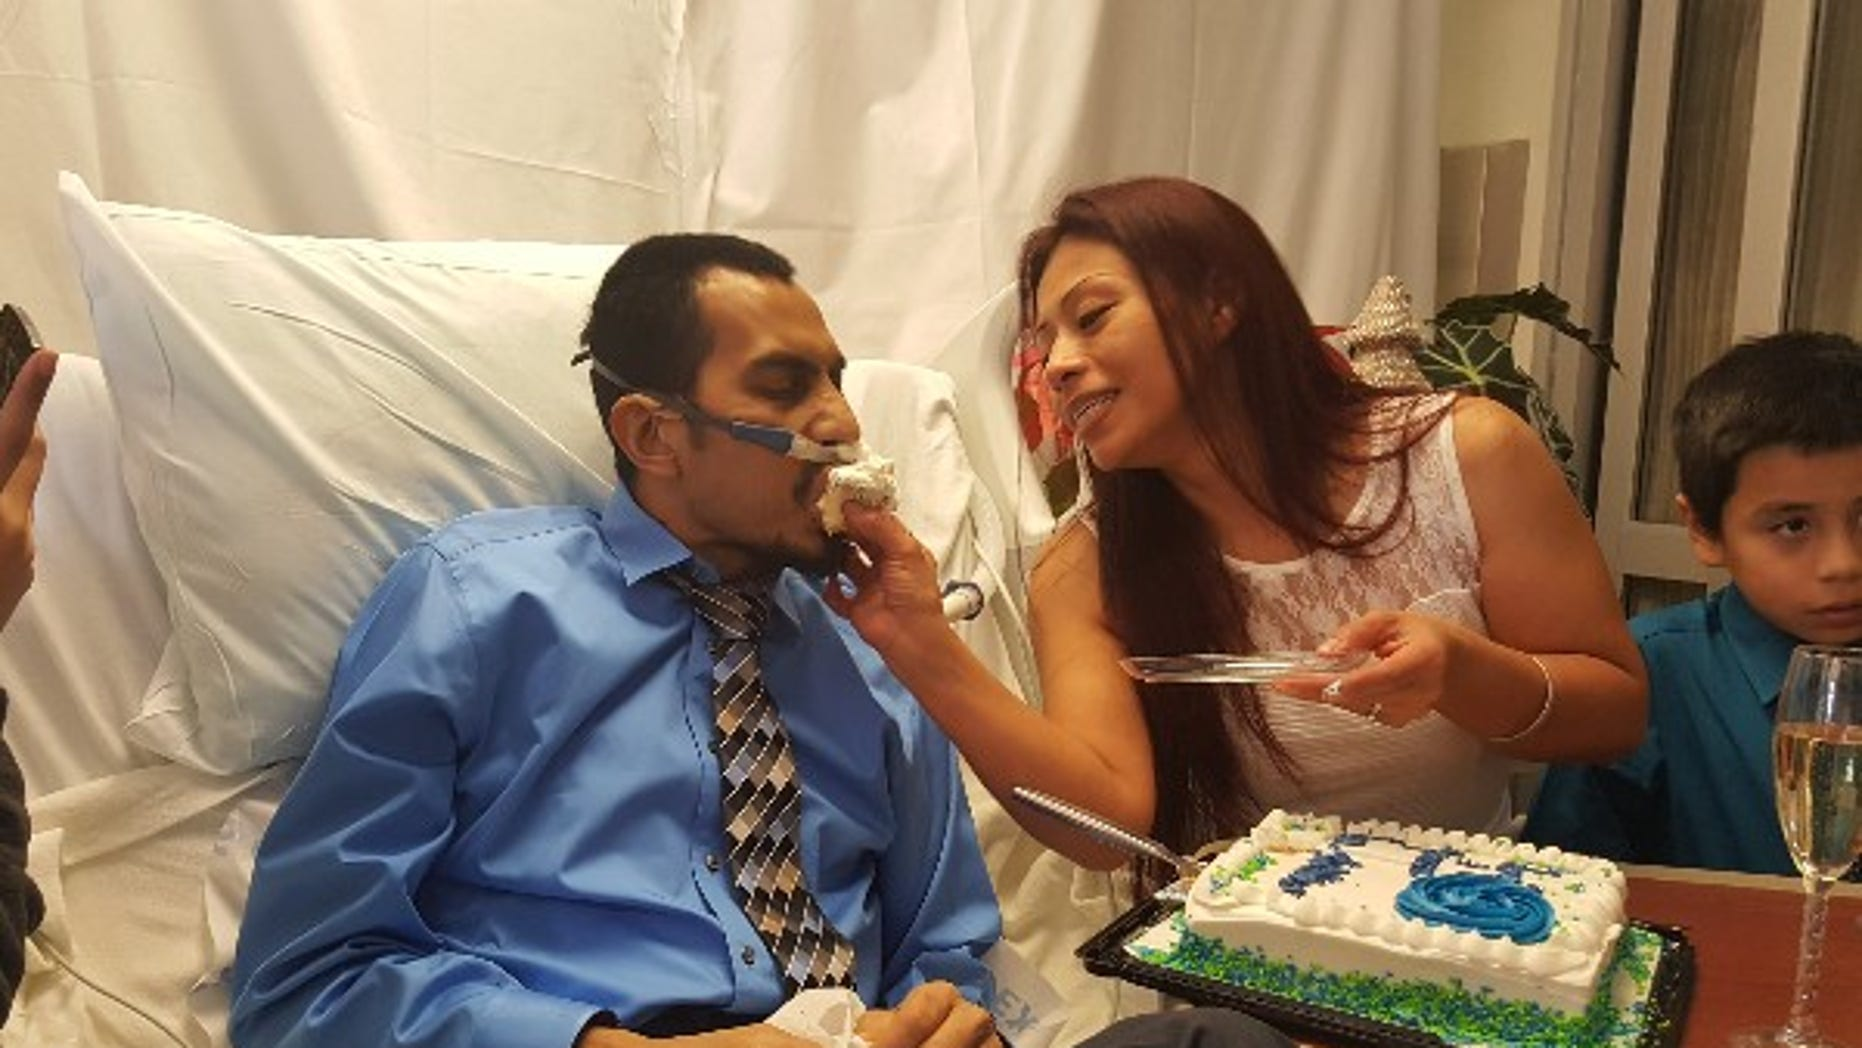 Yvonne and Raul were married last Friday, just 36 hours before he died.